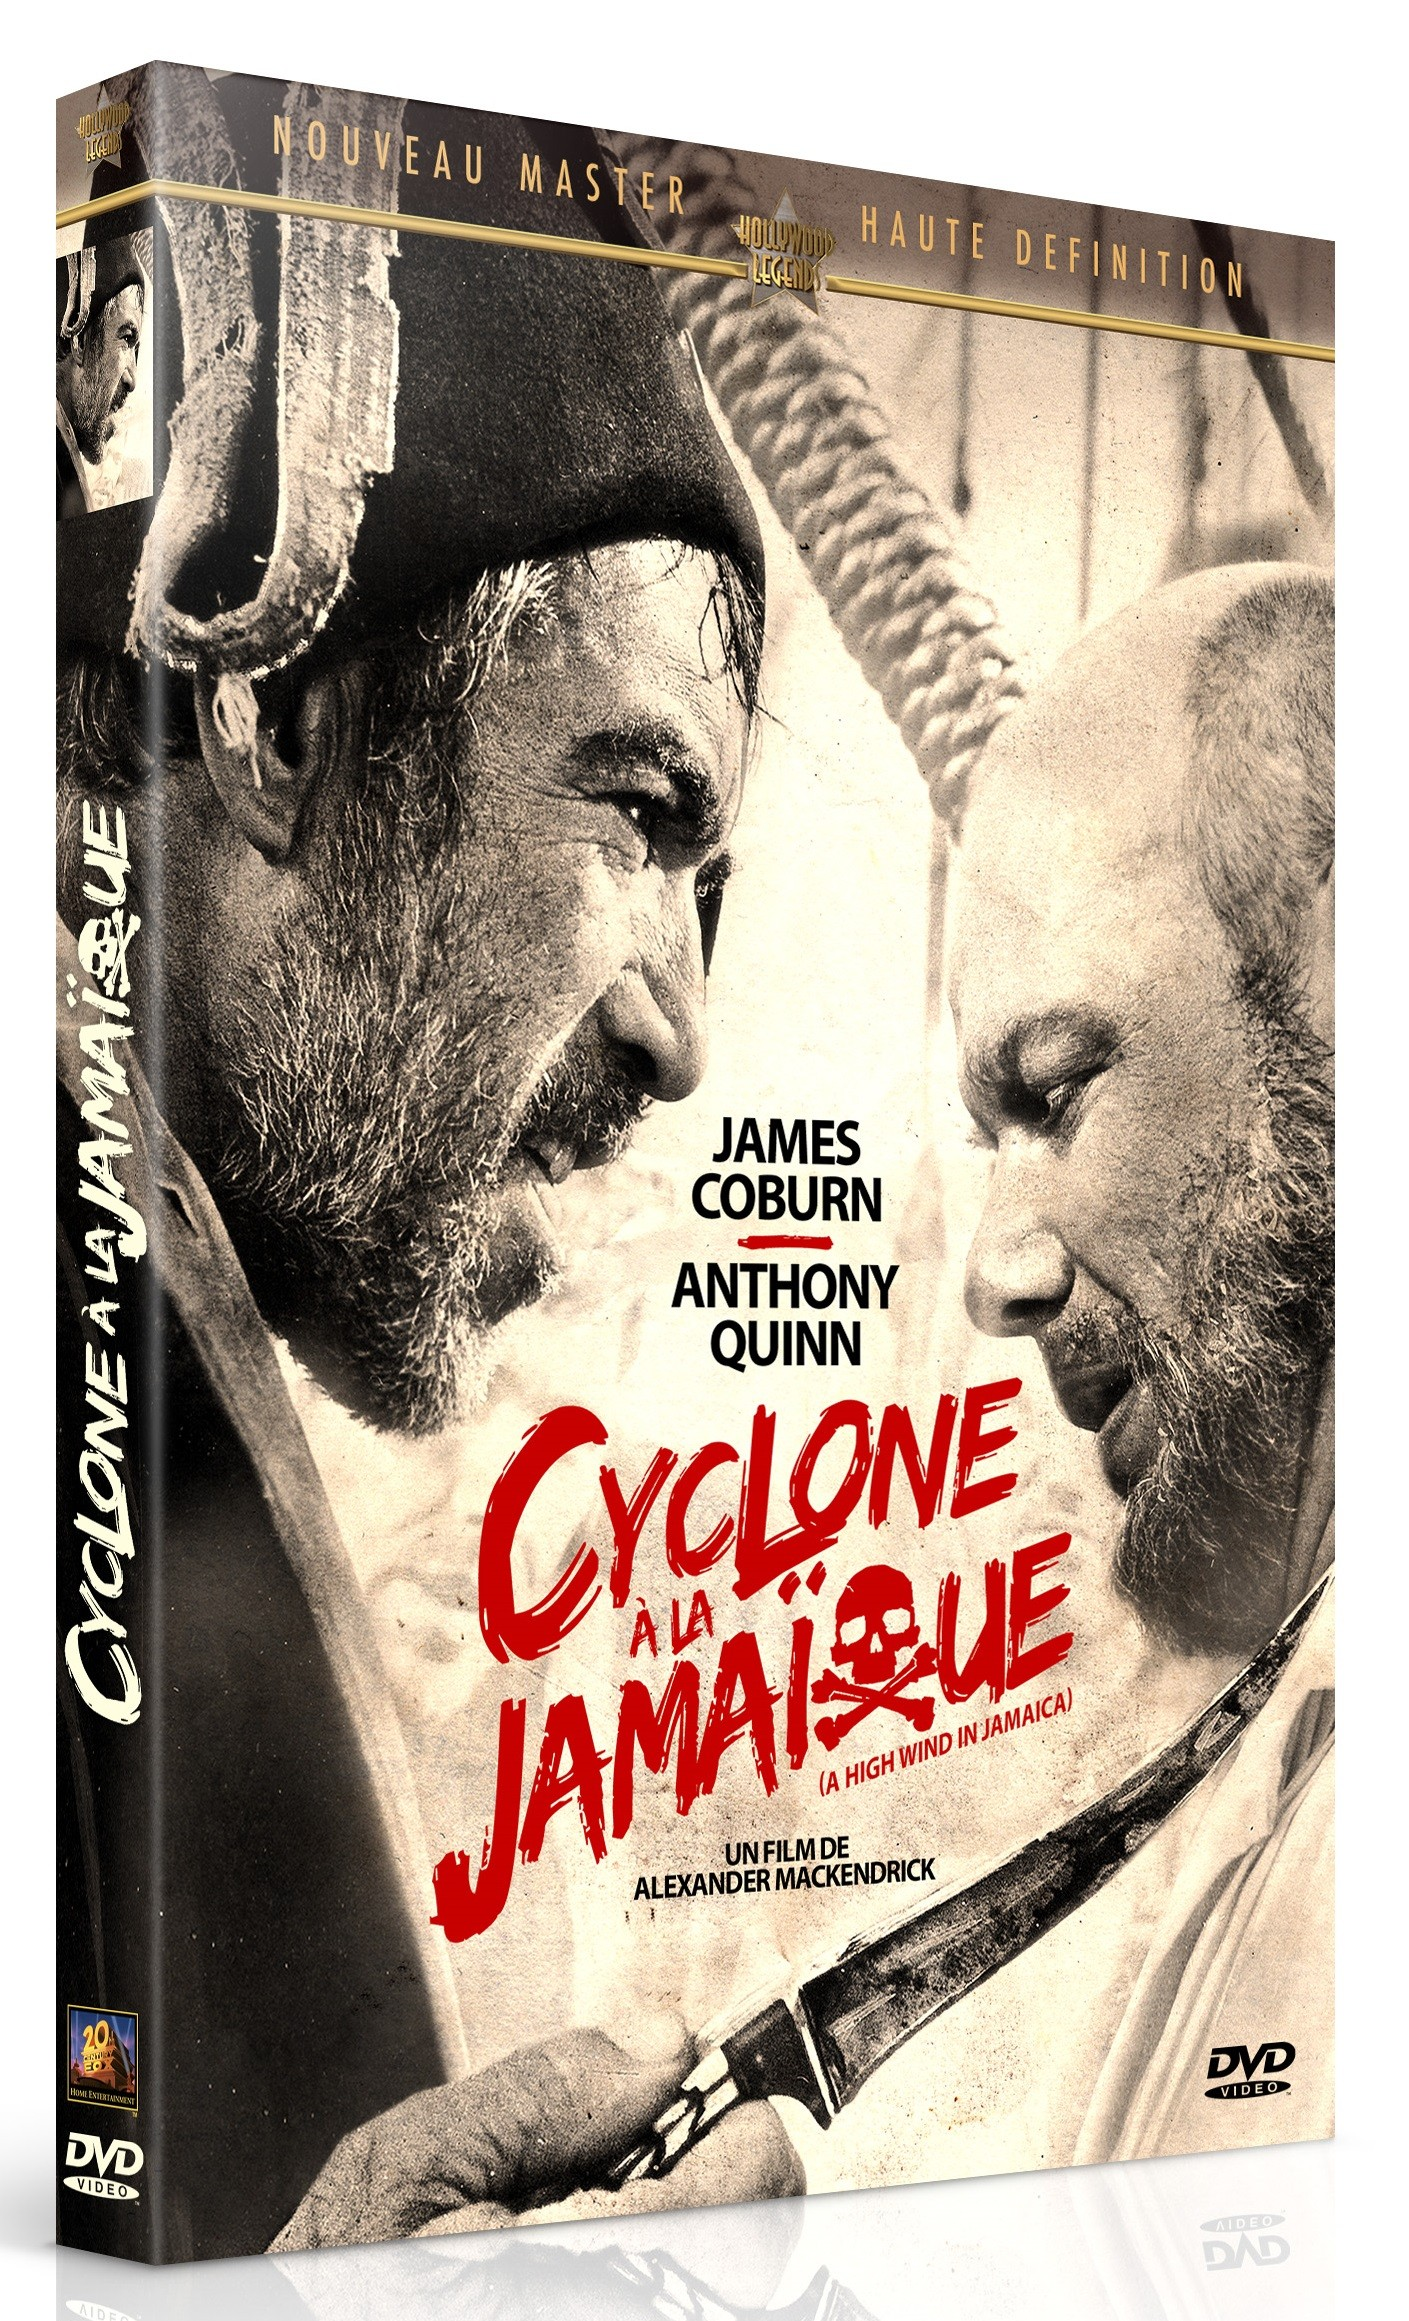 CYCLONE A LA JAMAIQUE